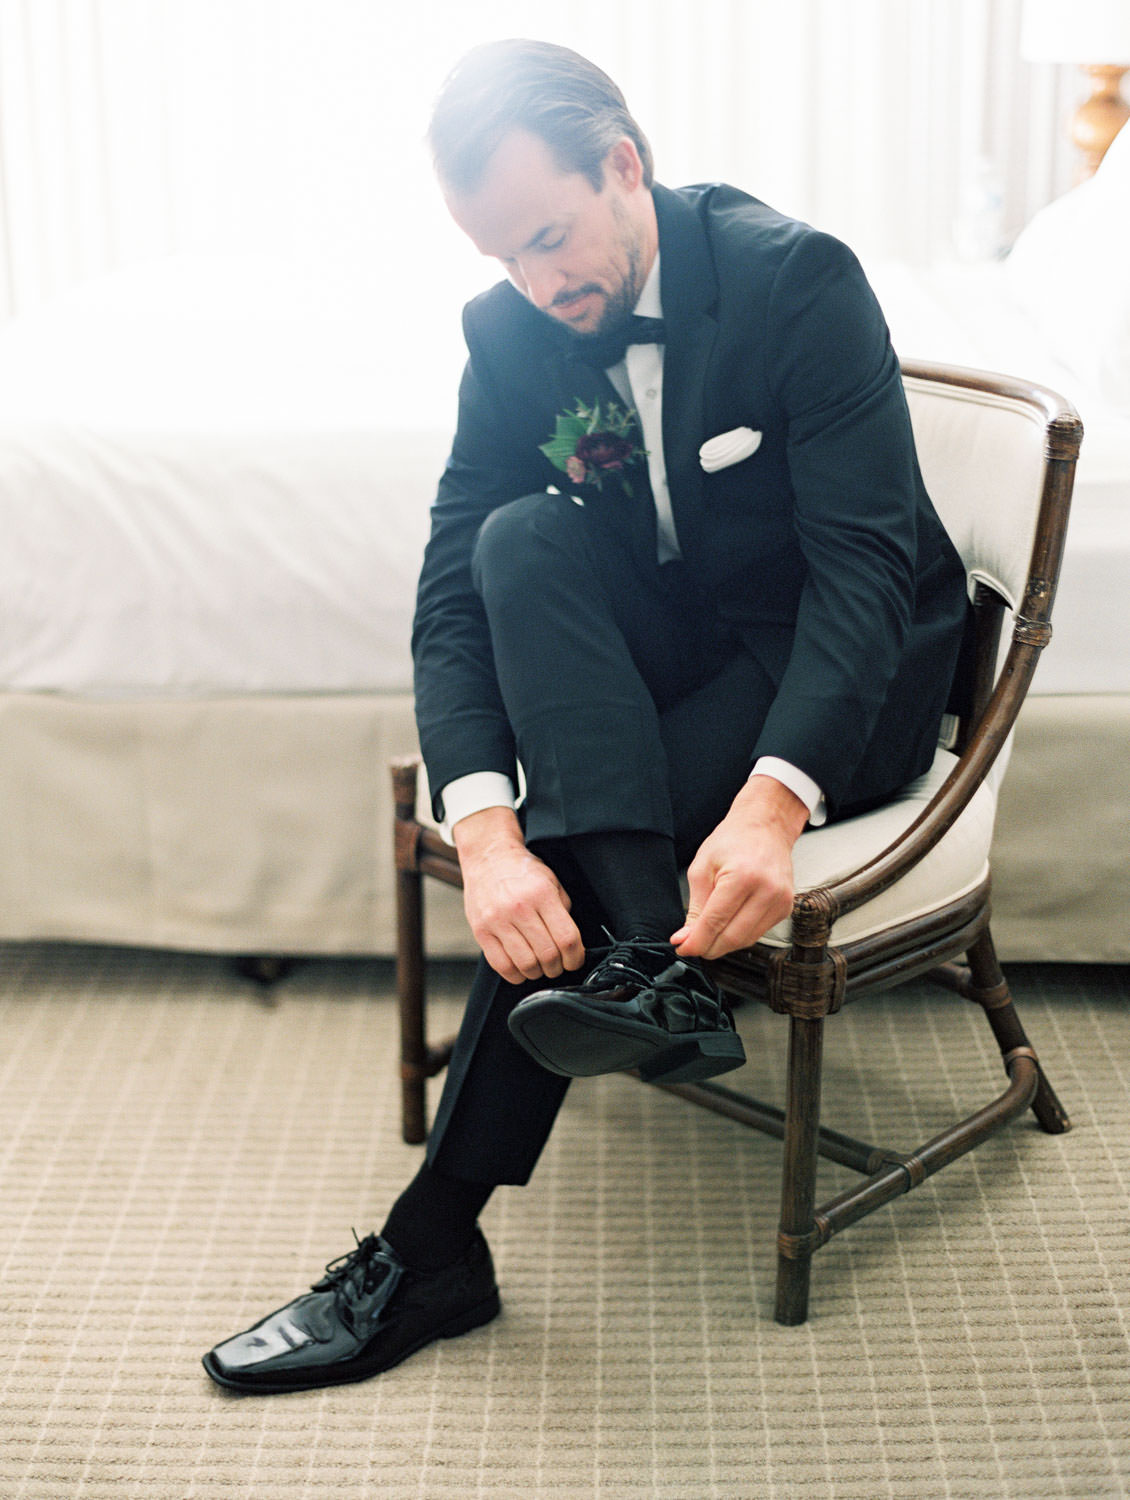 Groom putting on shoes with burgundy boutonniere with greenery and black tuxedo on film by Cavin Elizabeth Photography.